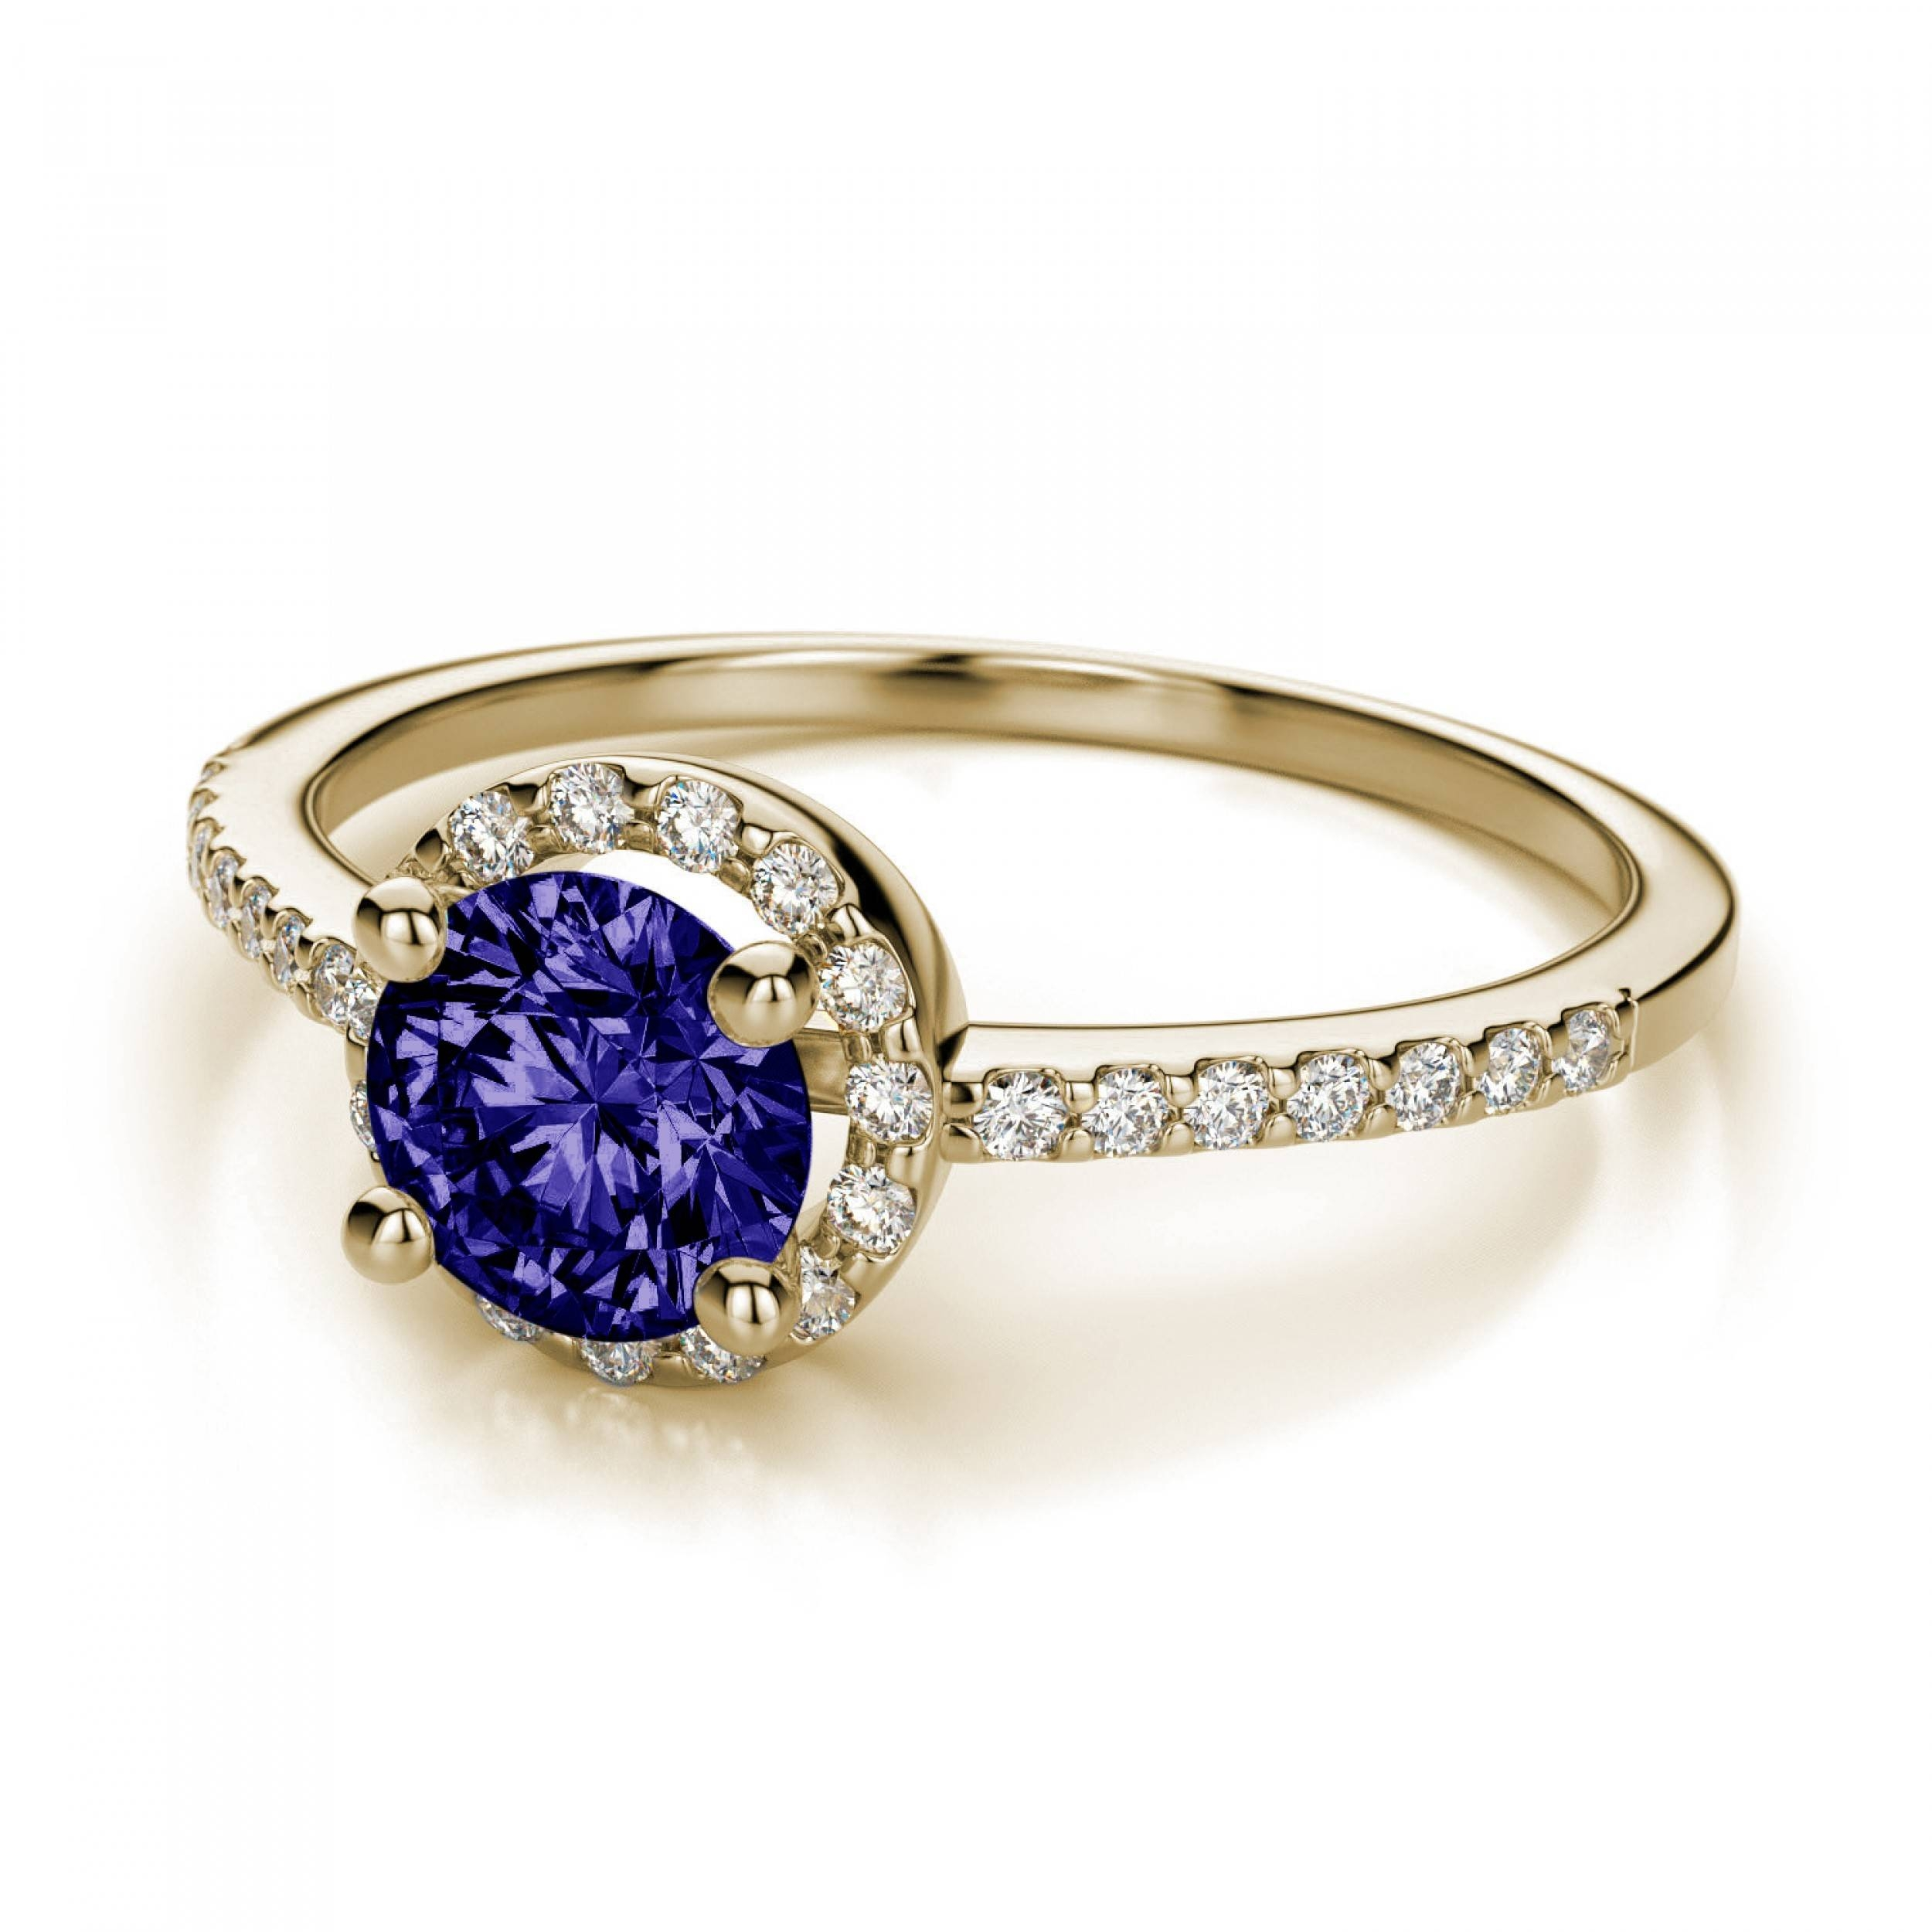 Halo Diamond And 5Mm Tanzanite Engagement Ring In 14K Yellow Gold With Regard To Diamond Tanzanite Engagement Rings (Gallery 5 of 15)